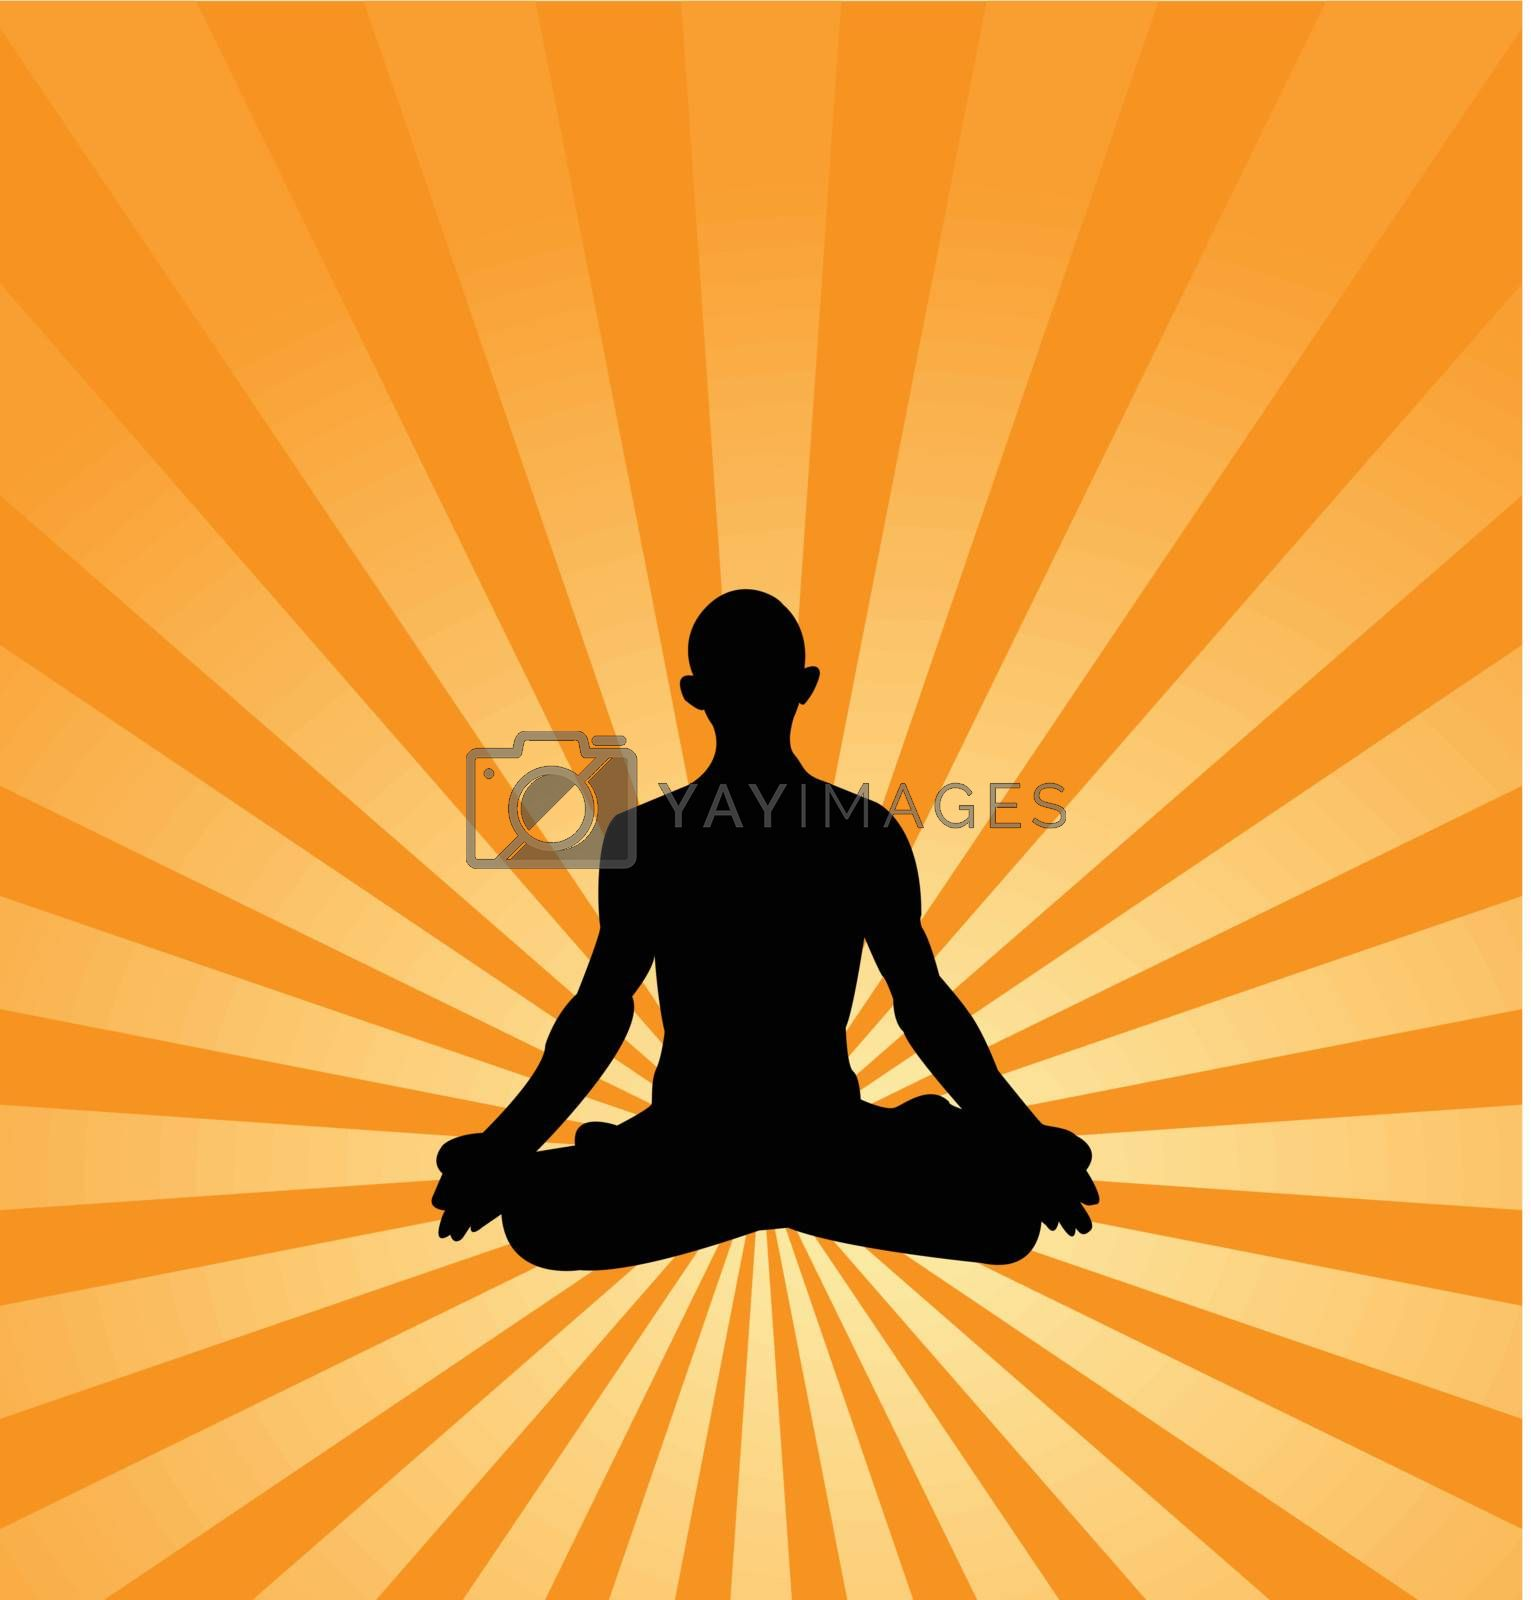 yoga background illustrations, in eps10 format to preserve the edit ability of the background.